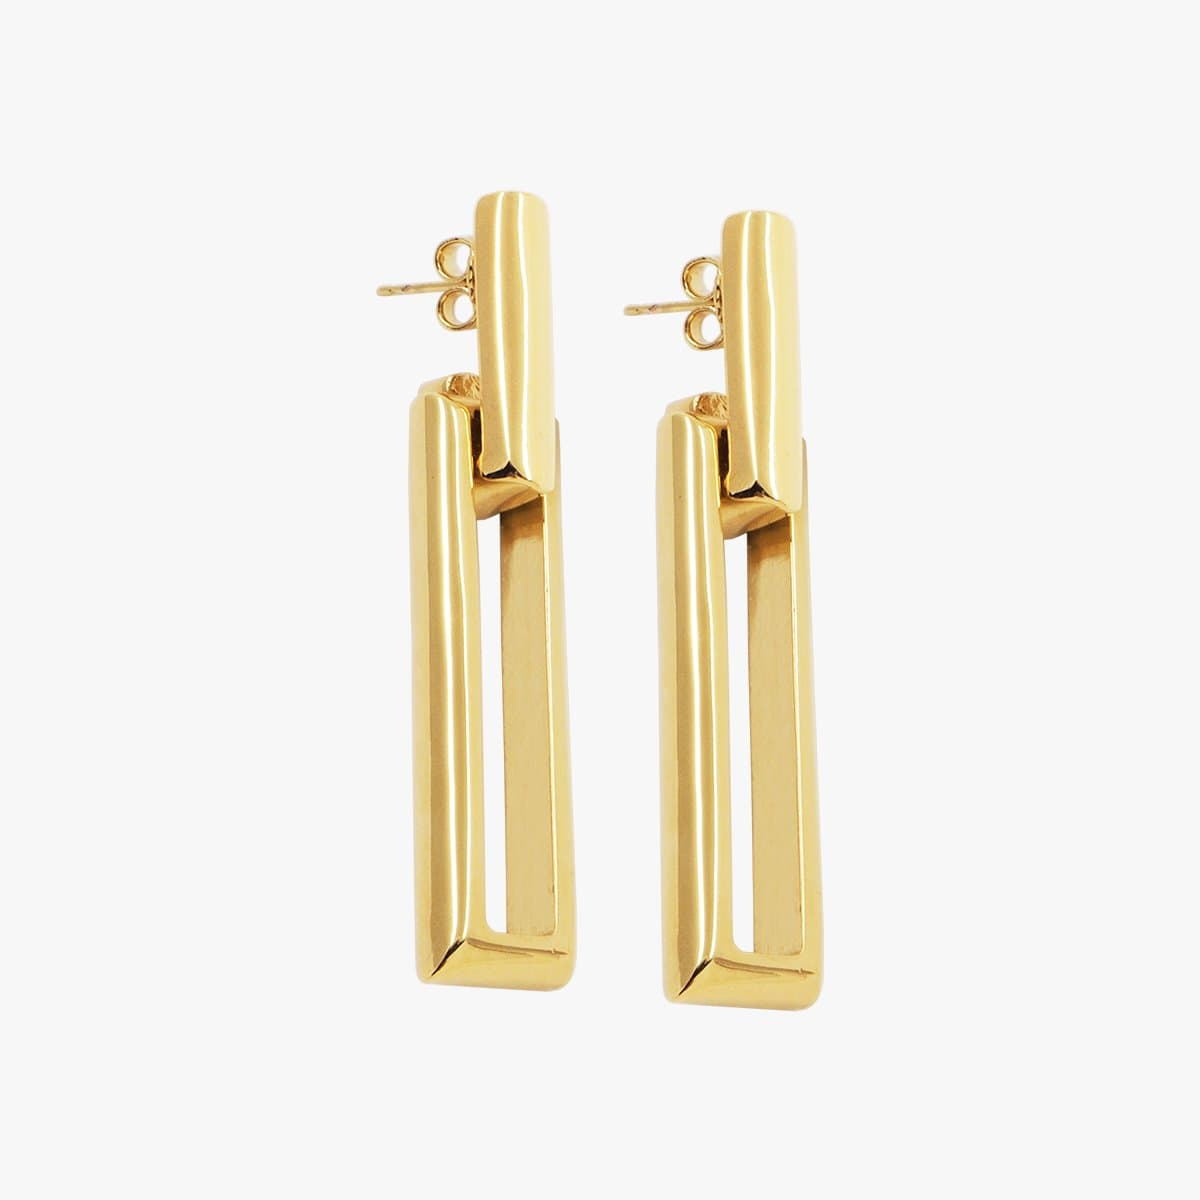 Gold Plated Earrings - E0062 ORO-CXC-Renee Taylor Gallery